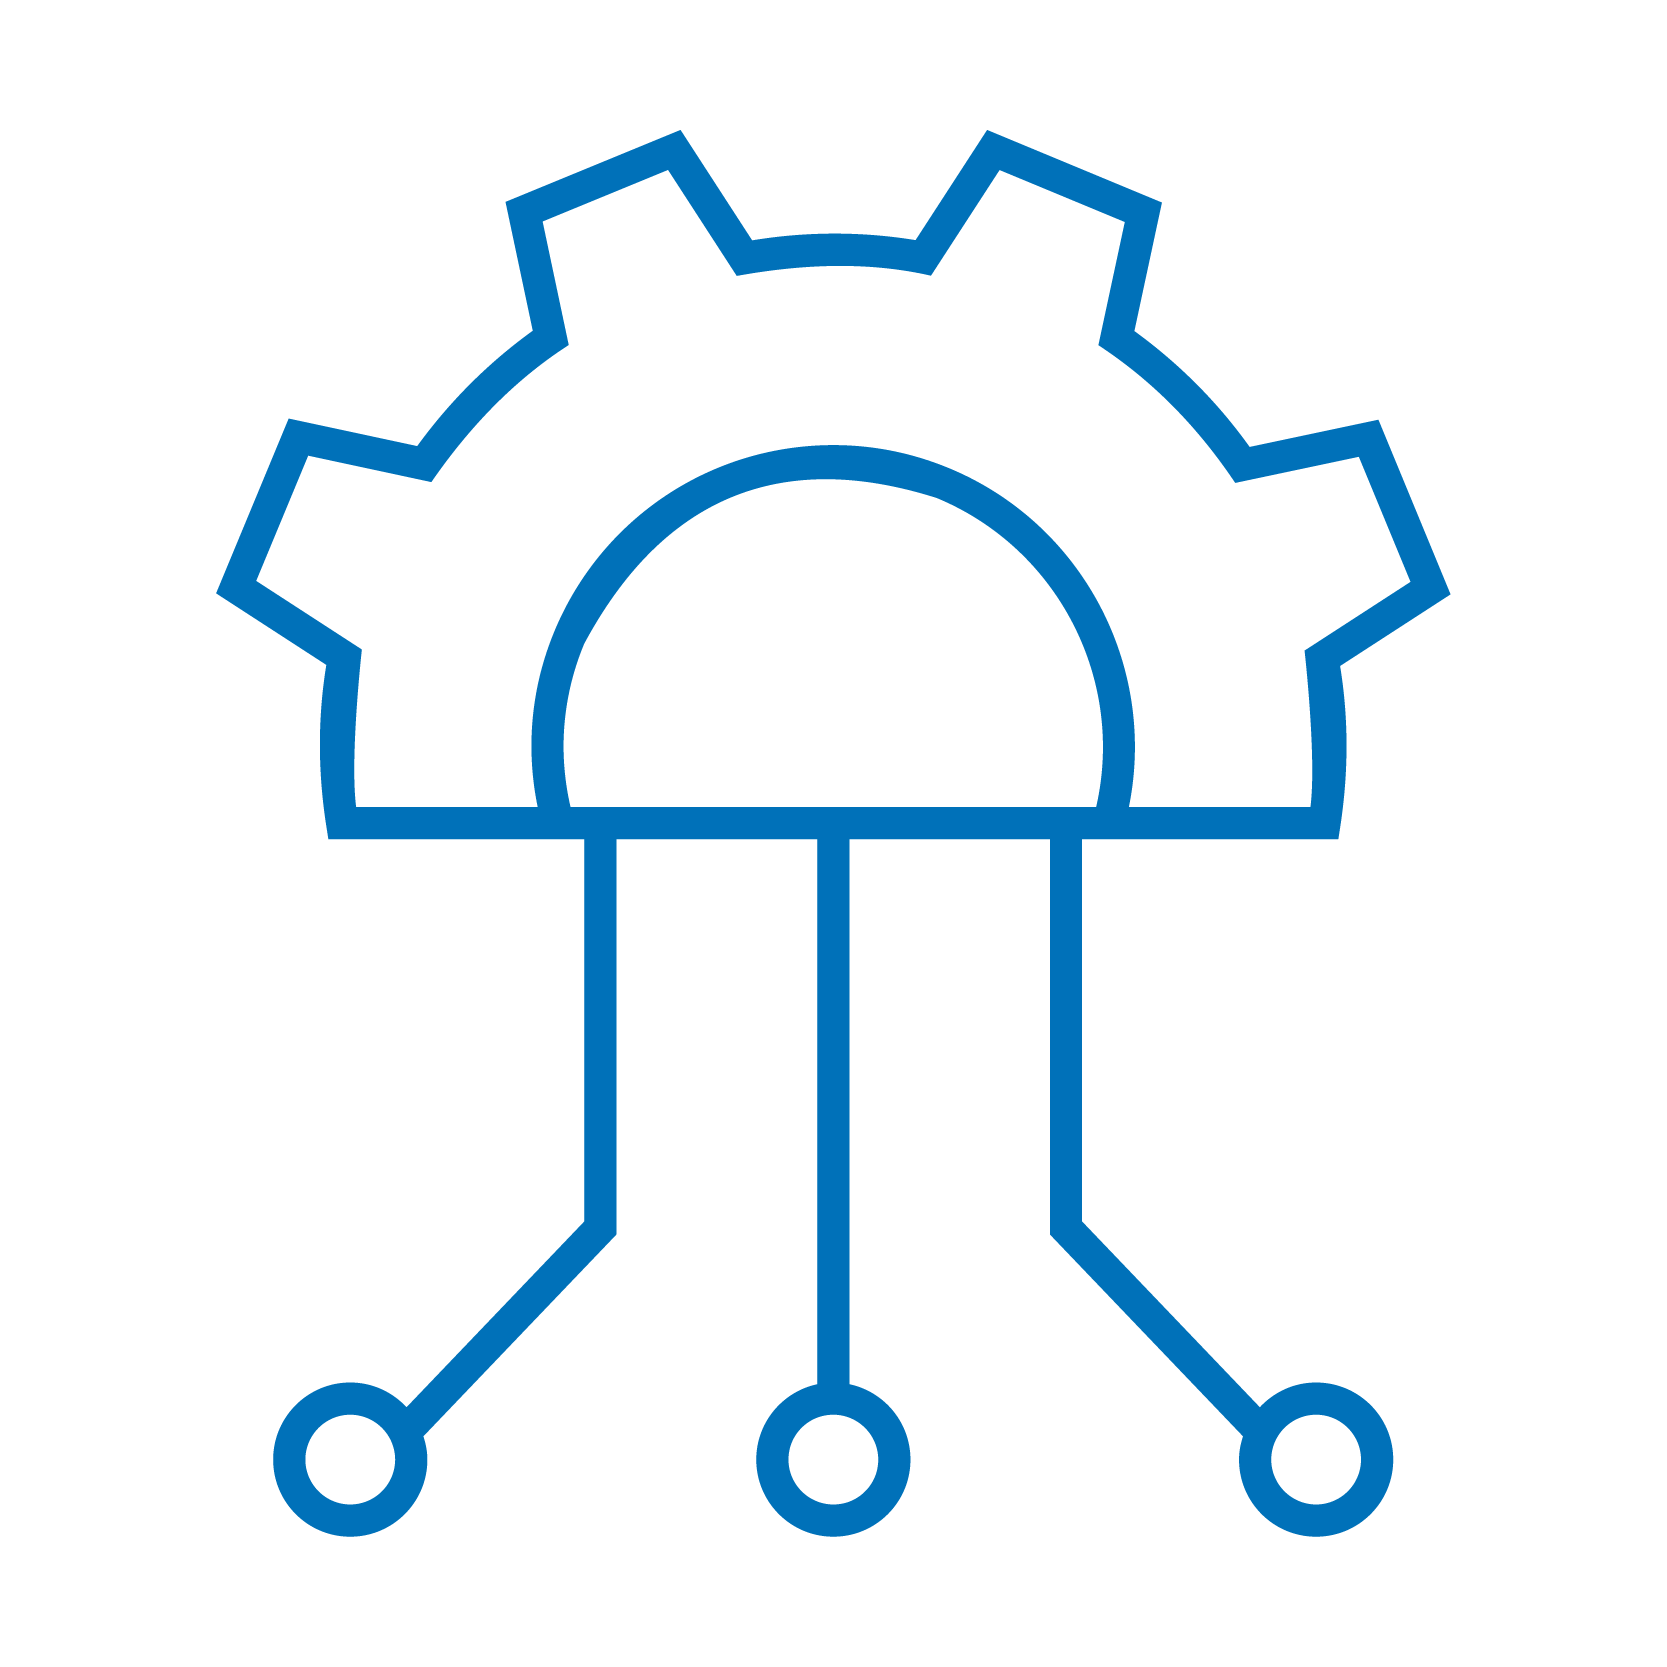 Transitioning Connectivity Technologies Icon